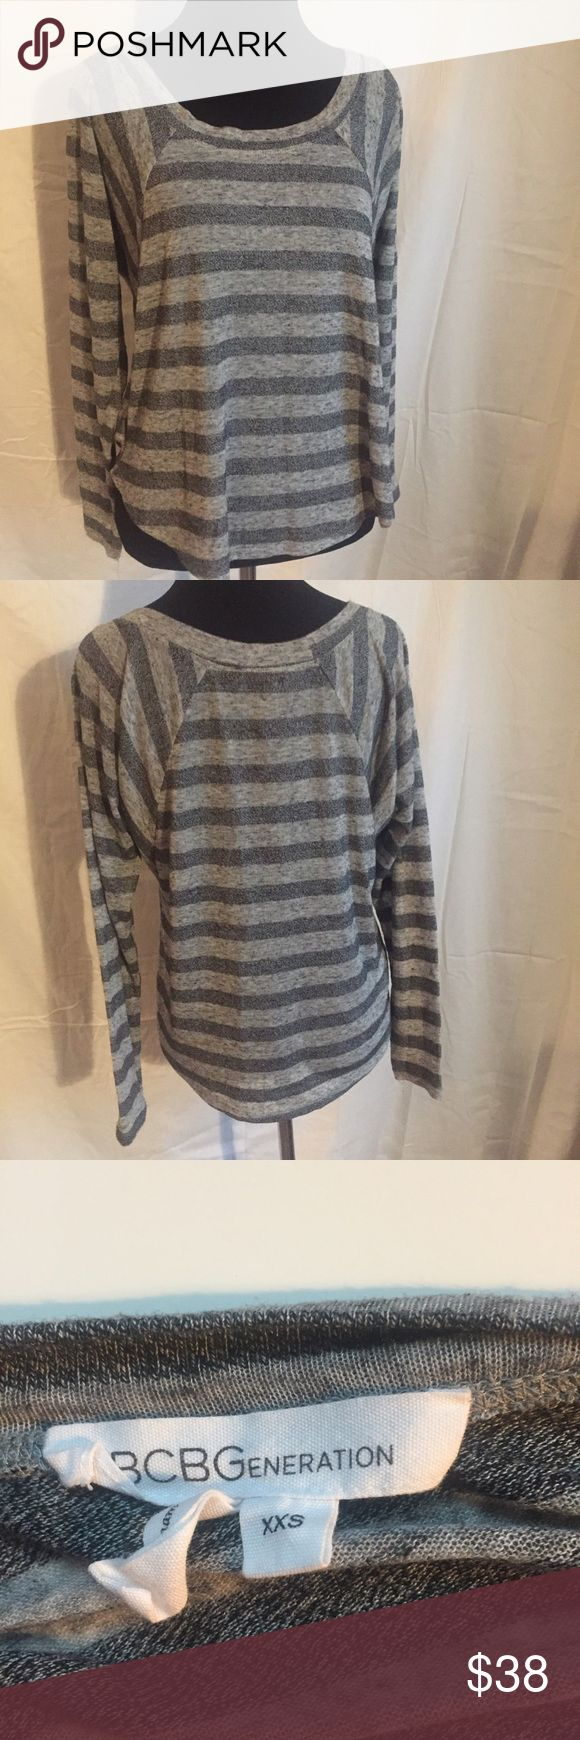 BCBGeneration gray striped long-sleeve tee sz XXS BCBGeneration gray striped long-sleeve tee sz XXS. Relaxed fit. Gently used. No signs of wear. 100% Authentic BCBGeneration Tops Tees - Long Sleeve